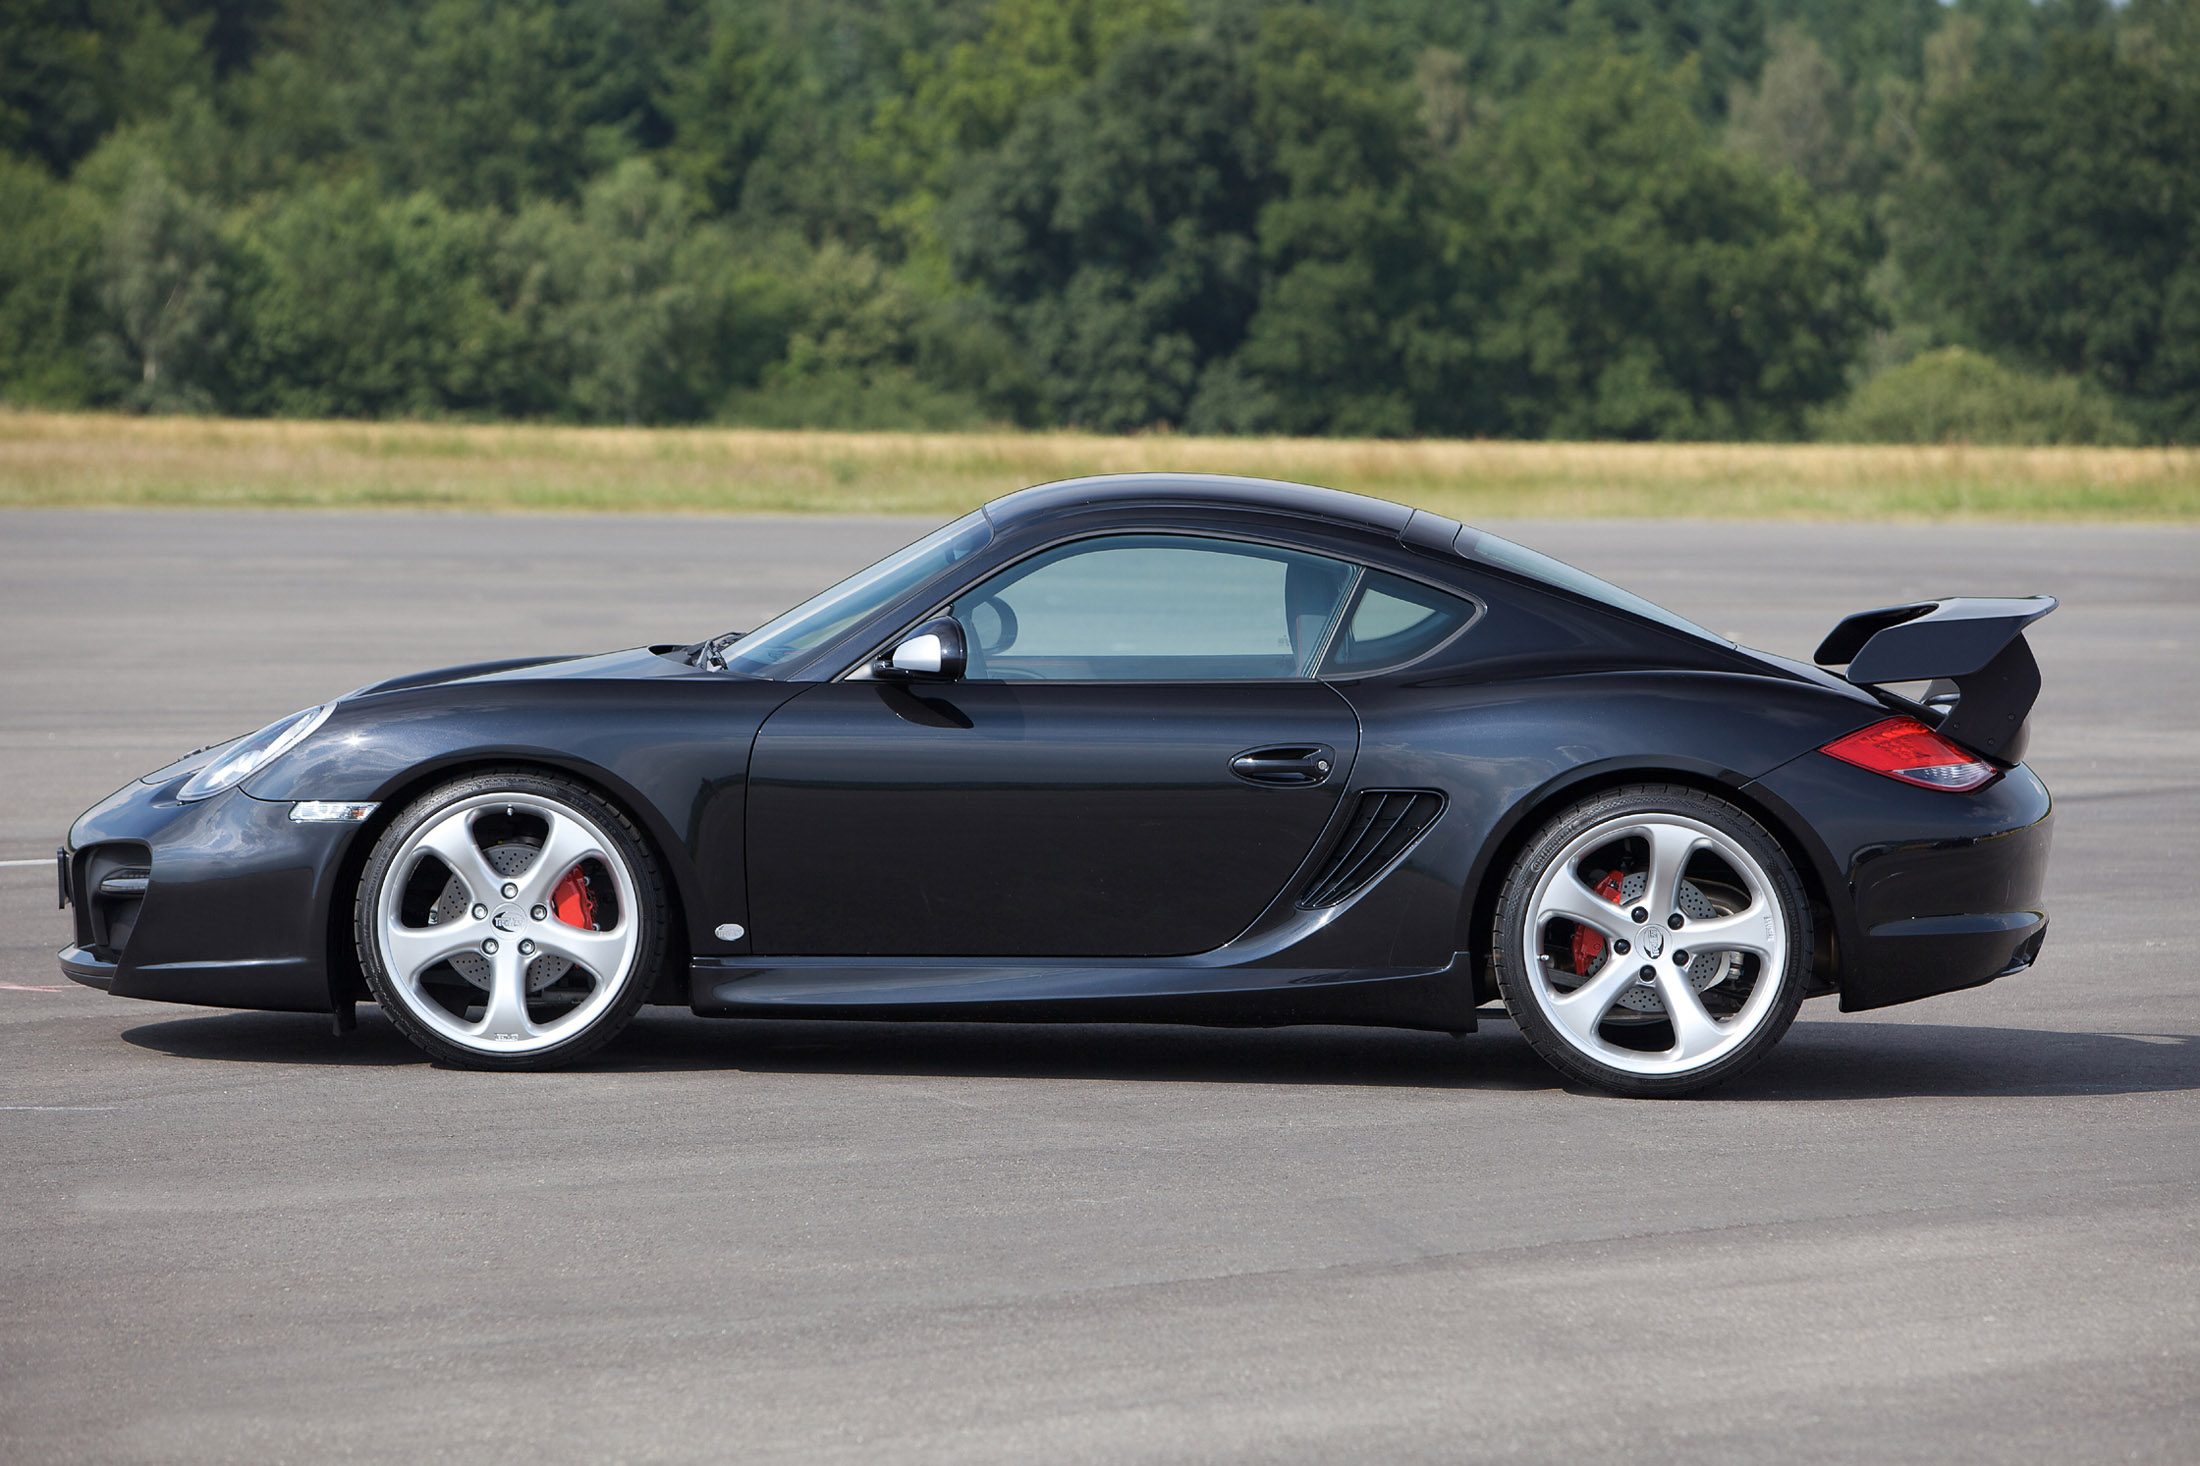 New Techart Program For Porsche Boxster Cayman